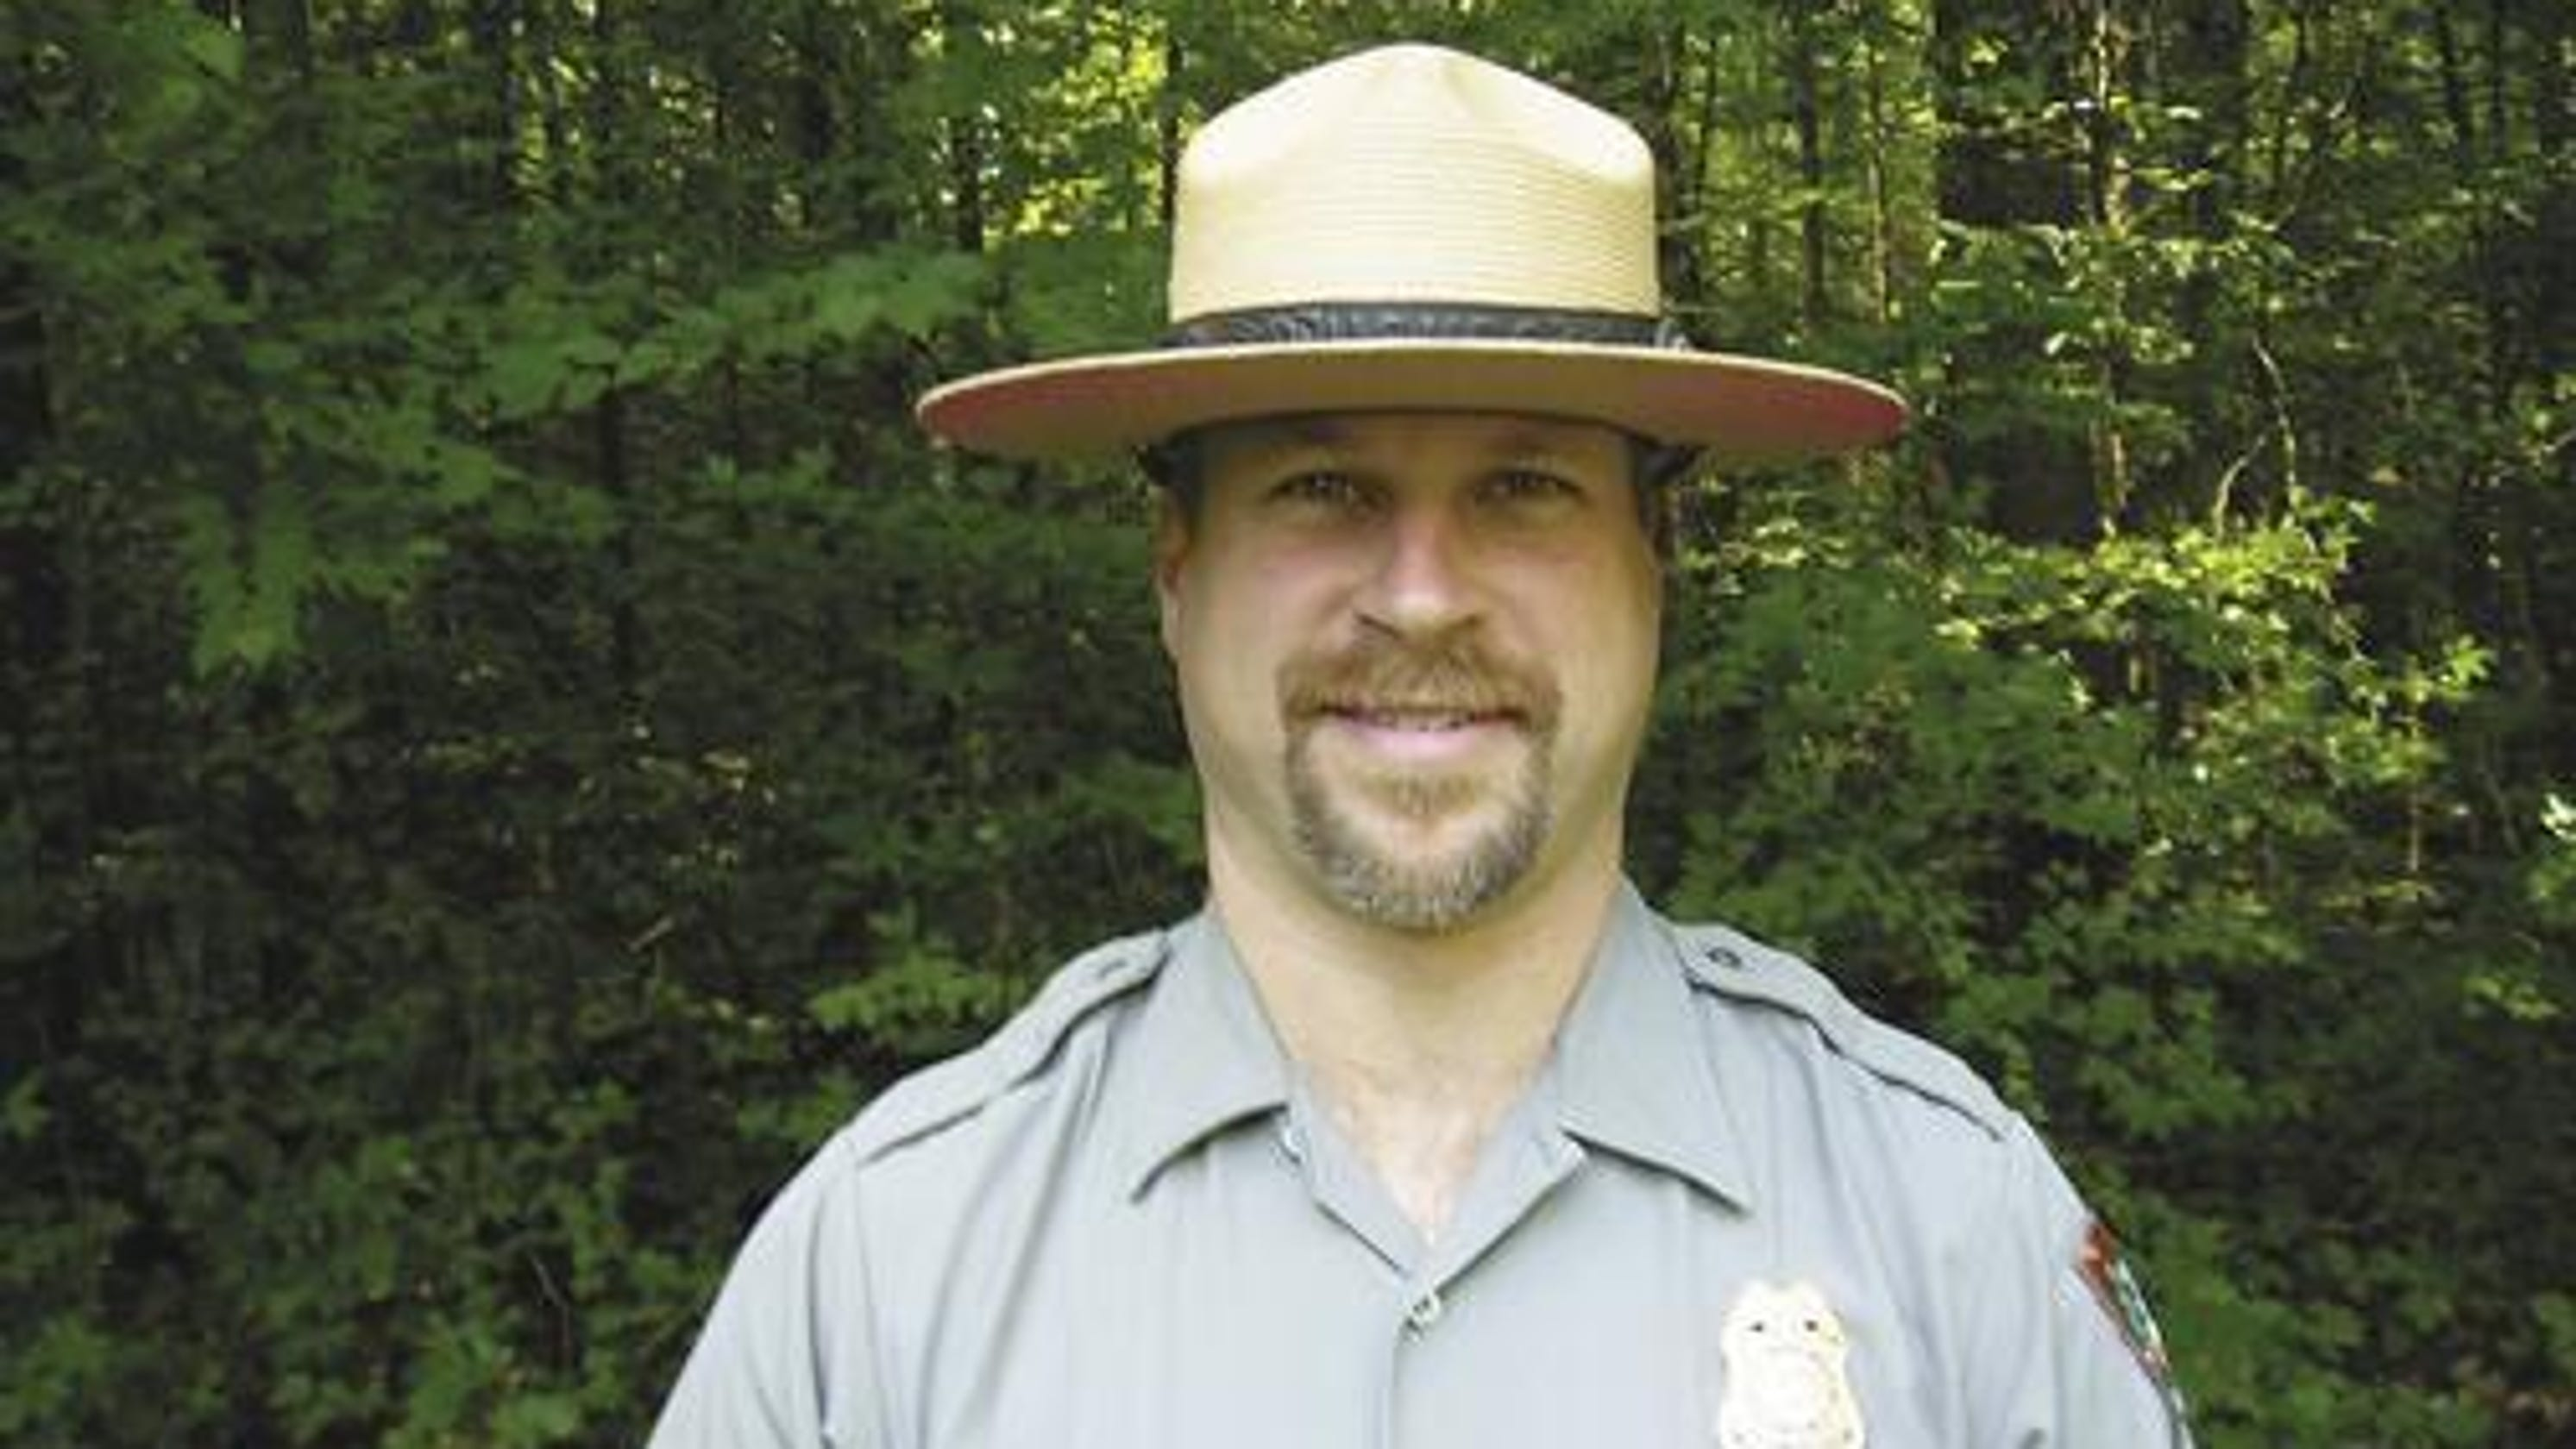 Blue Ridge Parkway ranger who faced drug charges may return